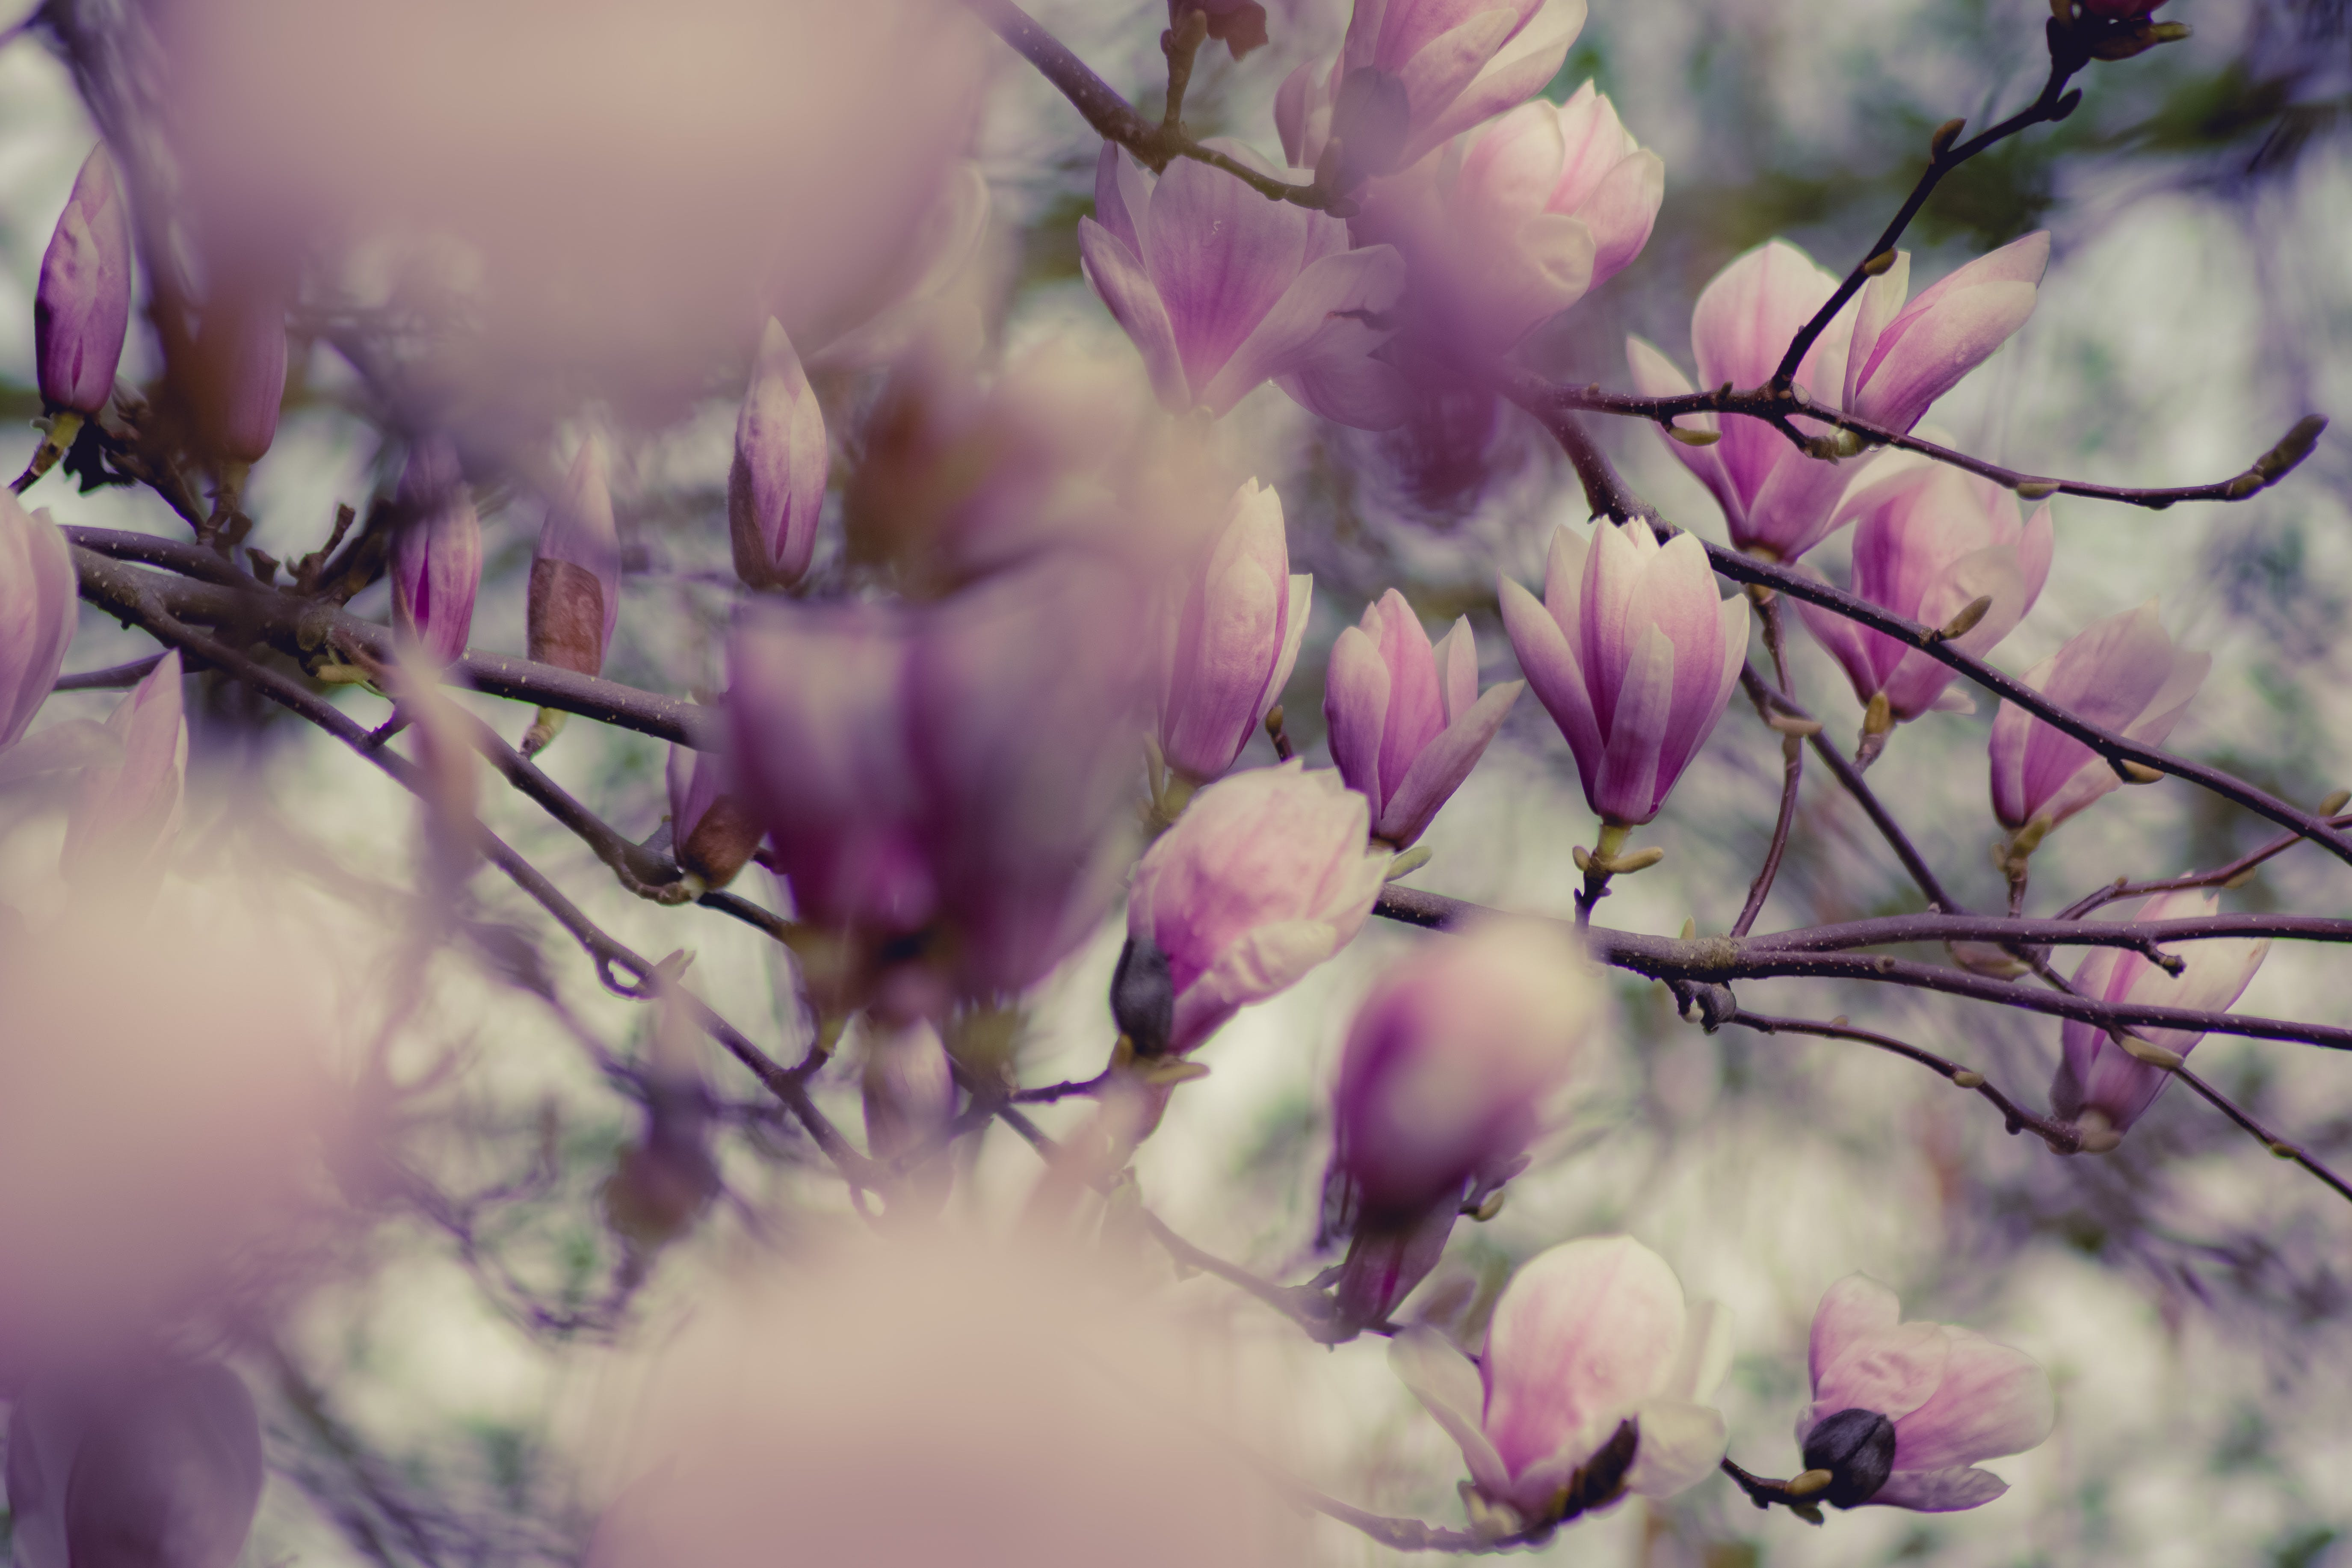 Close-up Photography of Magnolia Flowers